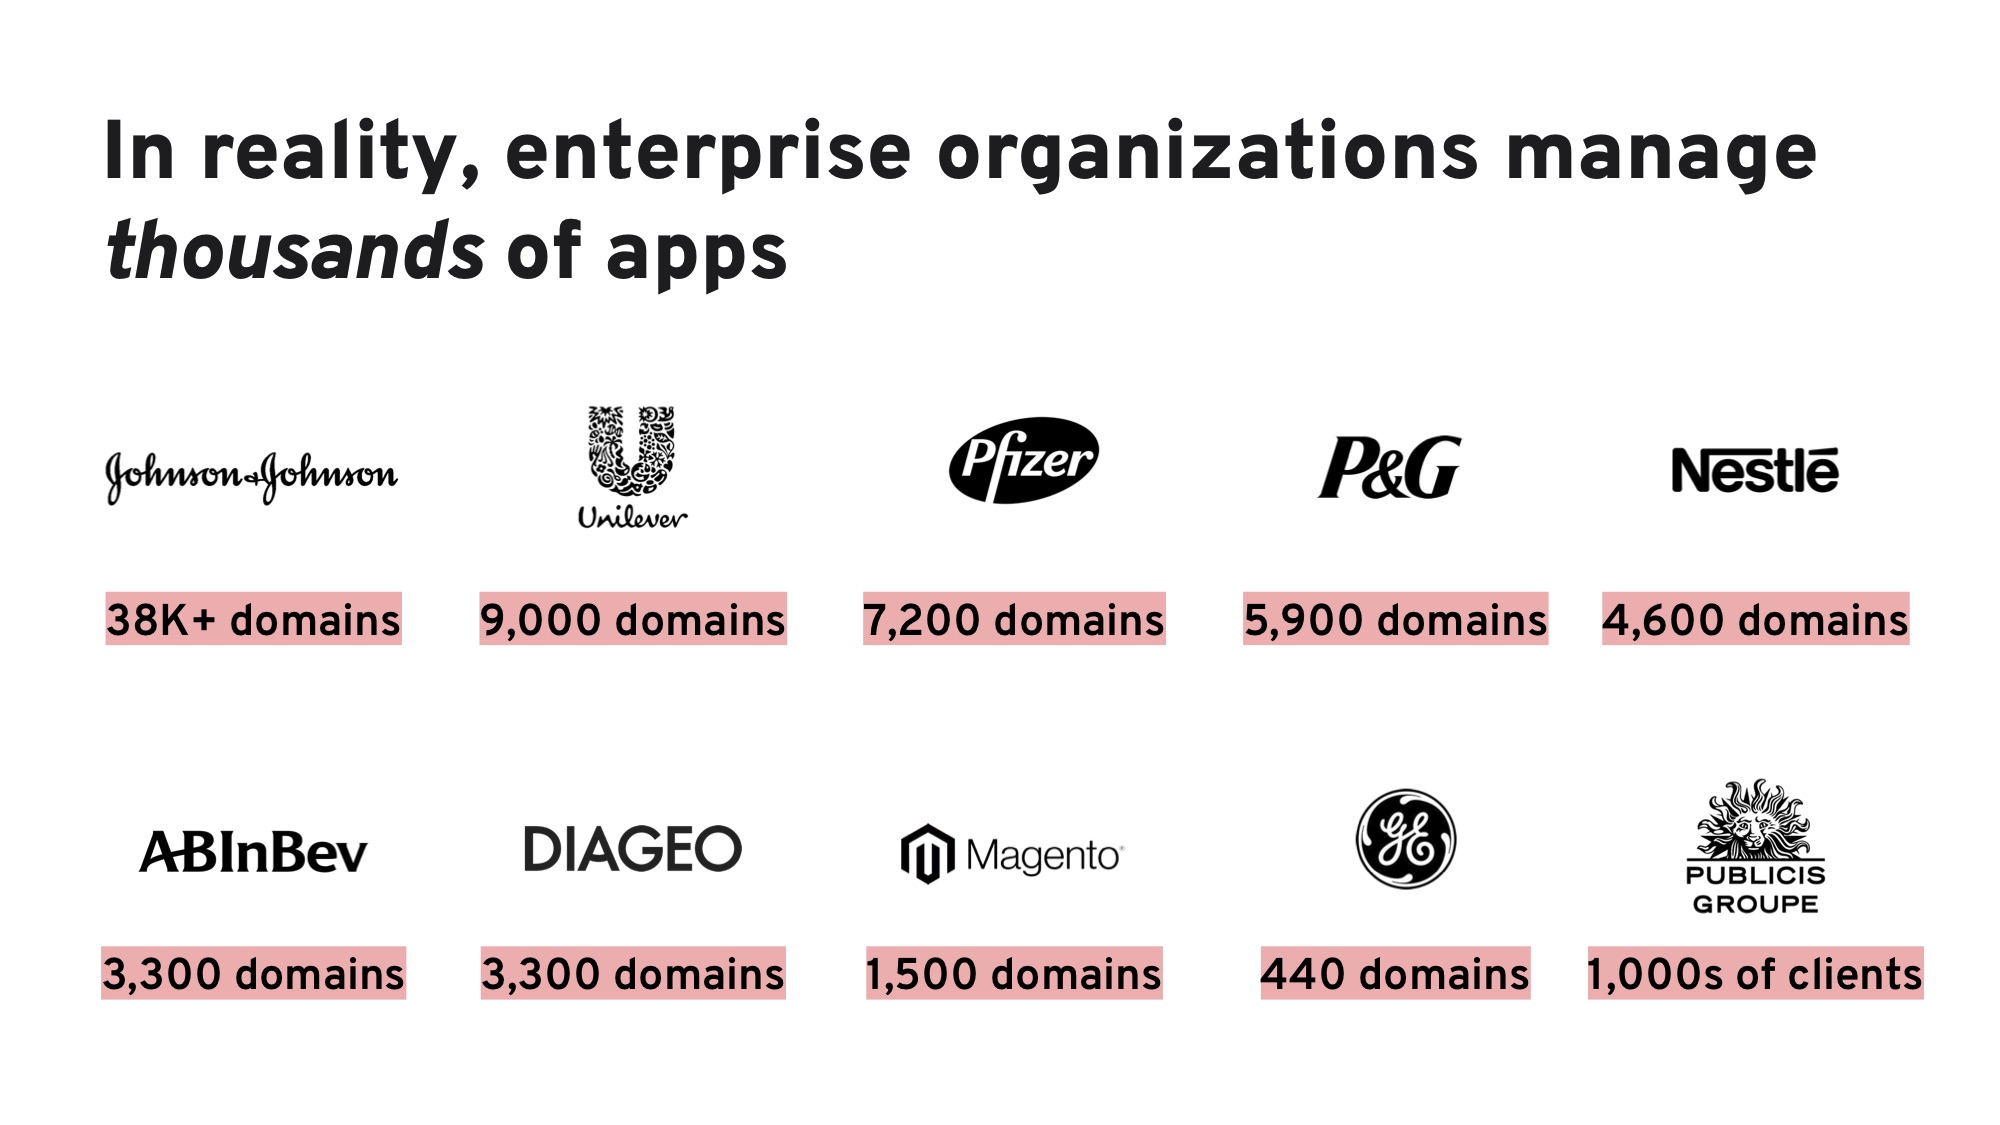 Image showing various large organizations and their domain counts